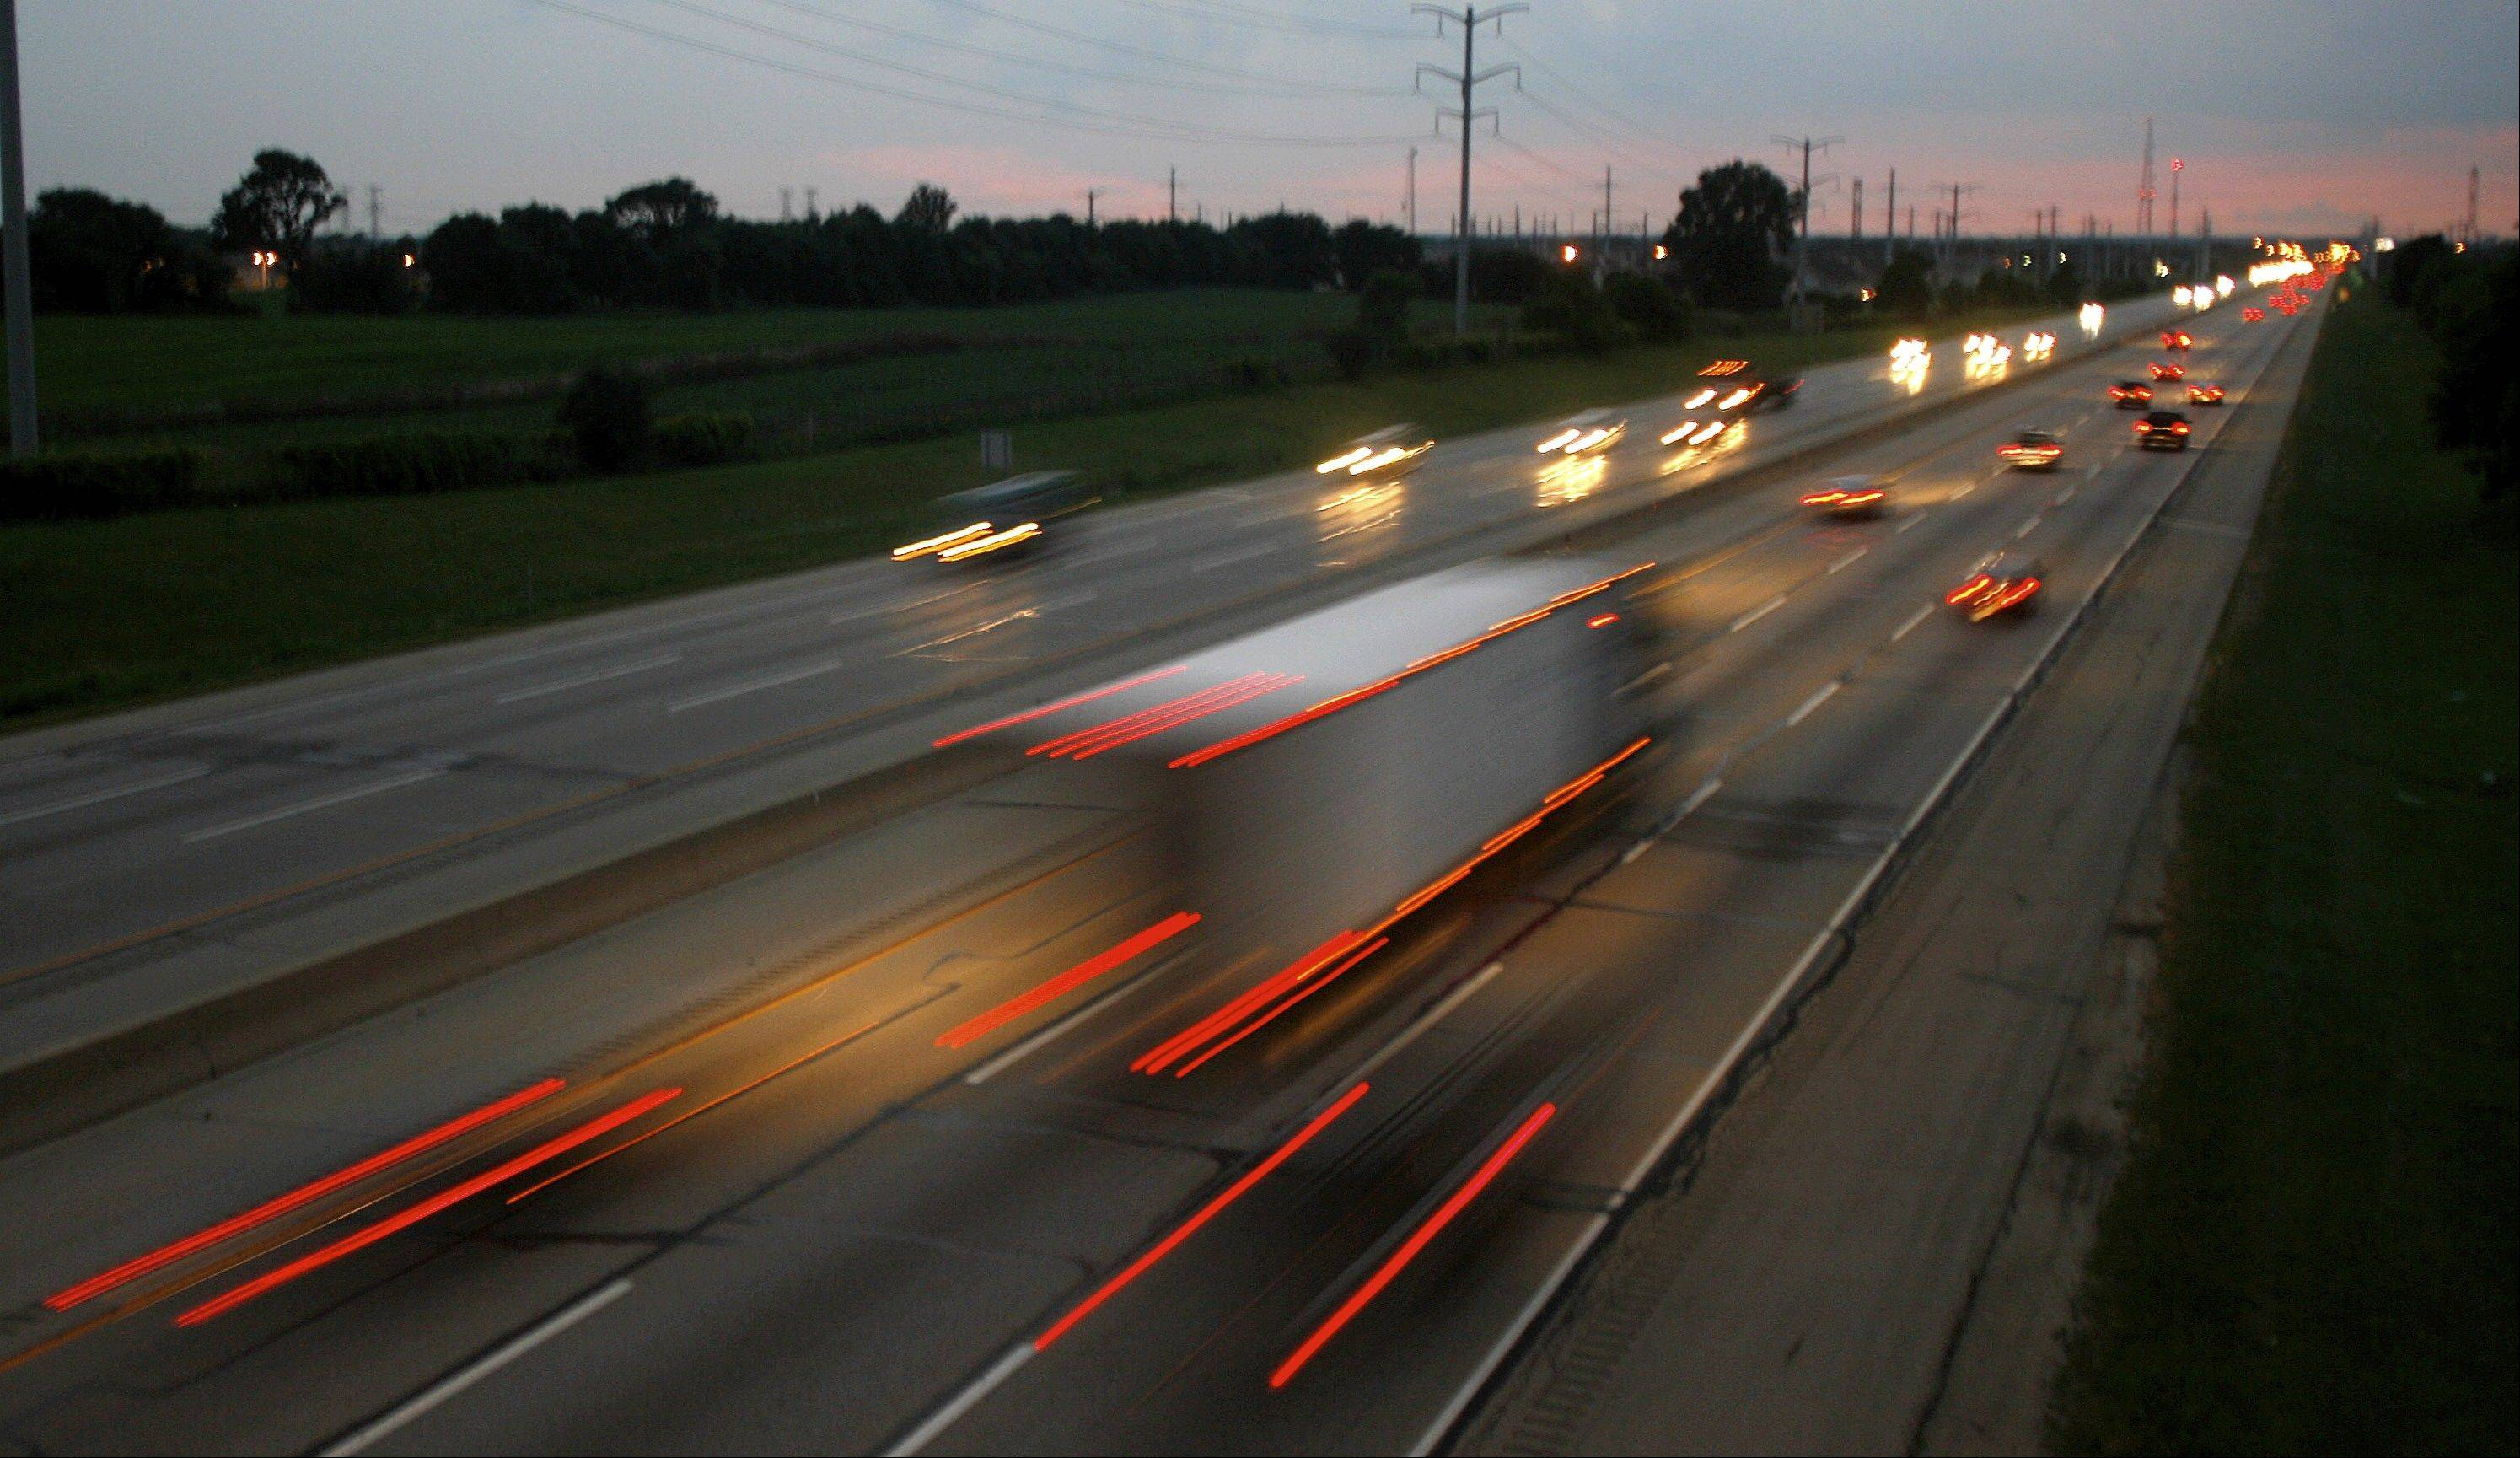 Daily Herald File PhotoShould speed limits on local highways and tollways go up to 70 mph?